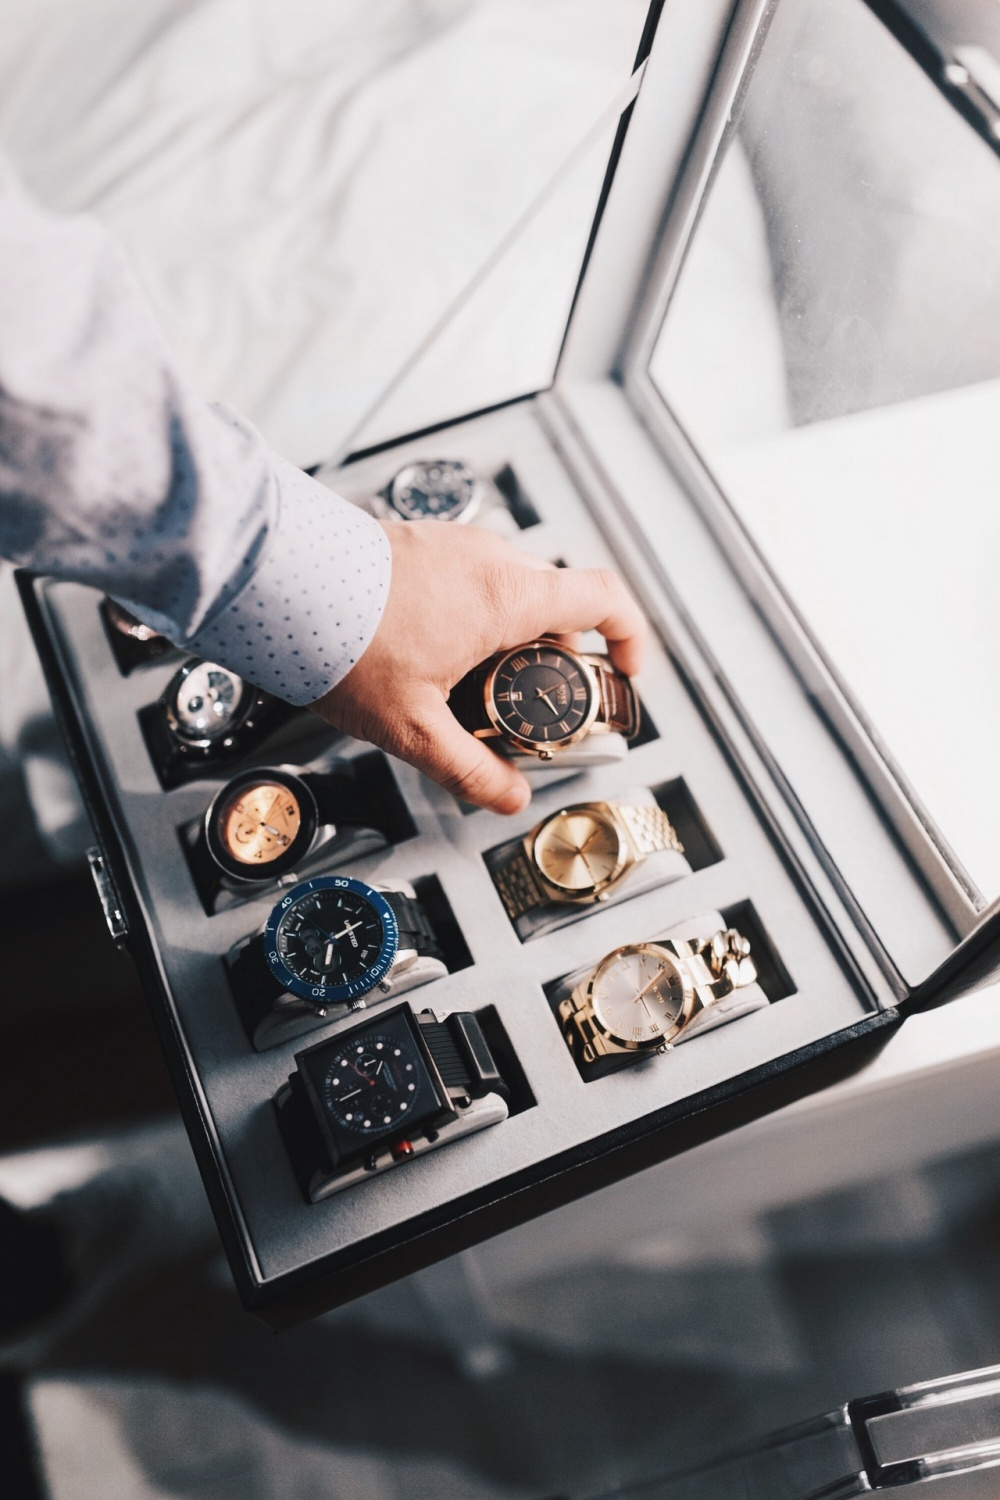 How to get the best featured watches